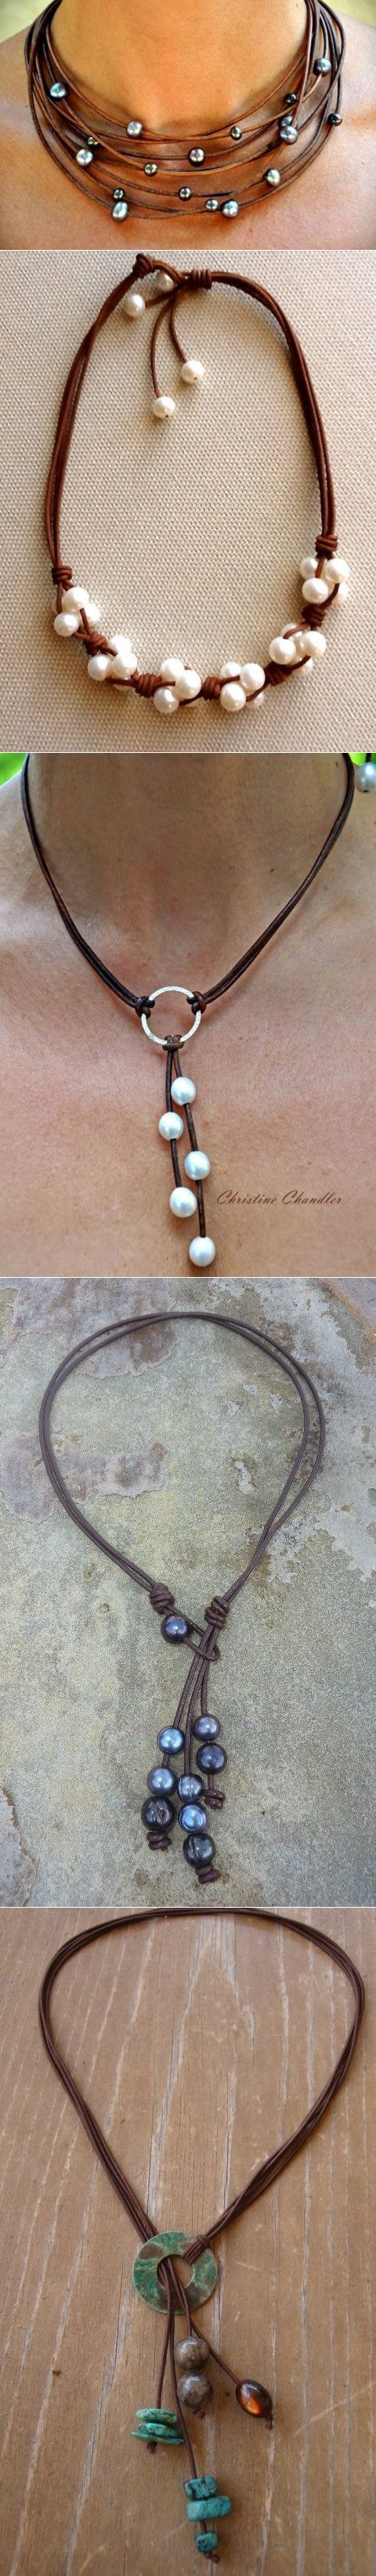 Fashion for pearls (compilation and bonus) / Jewellery and jewelry / SECOND STREET